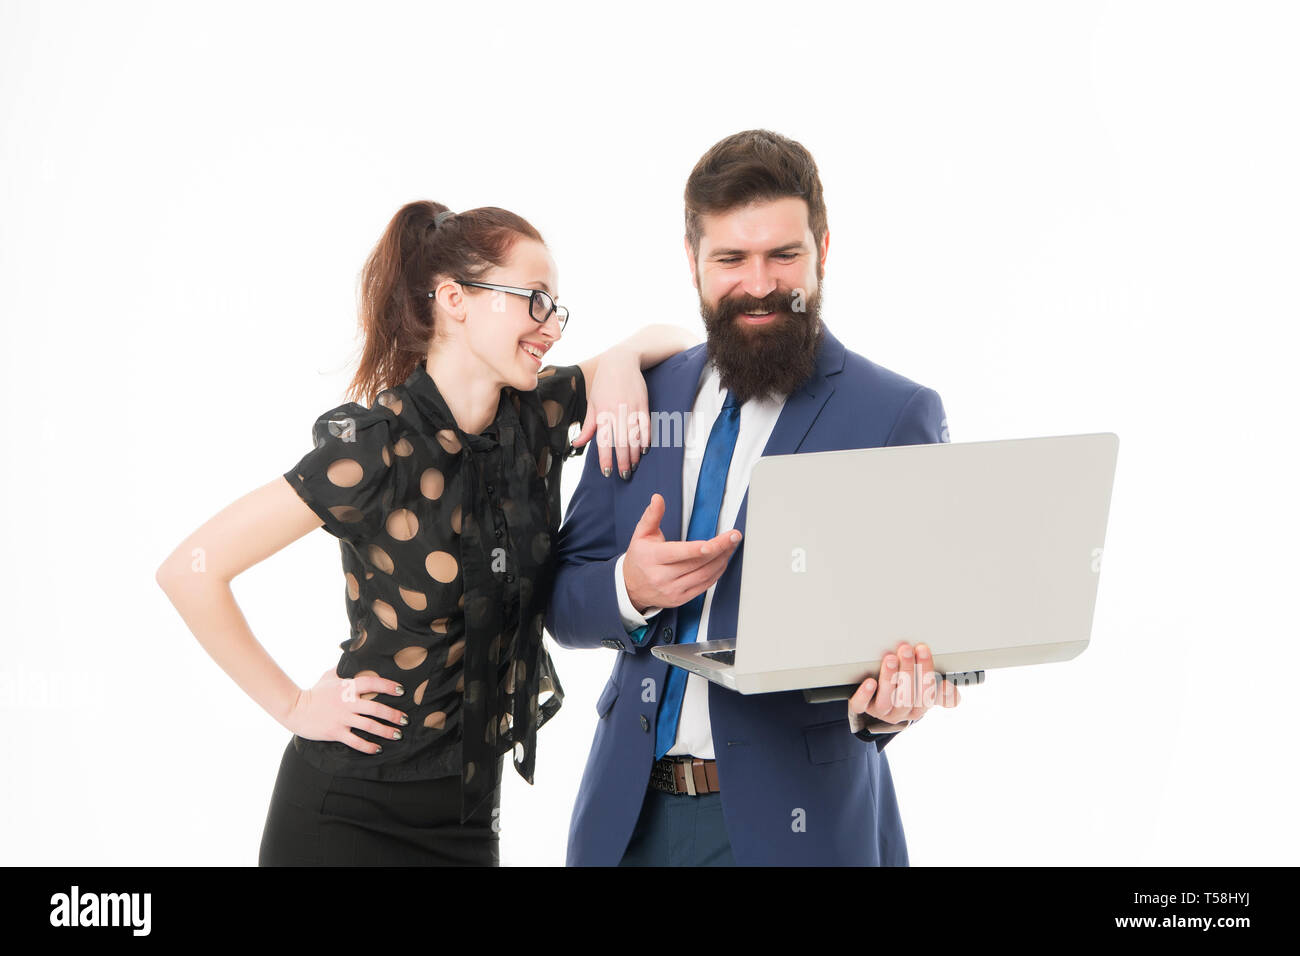 Financial report. Financial indicators. Couple working using laptop. Business lady check what is done. Lady boss satisfied with business indicators. Manager show result. Report business result. - Stock Image